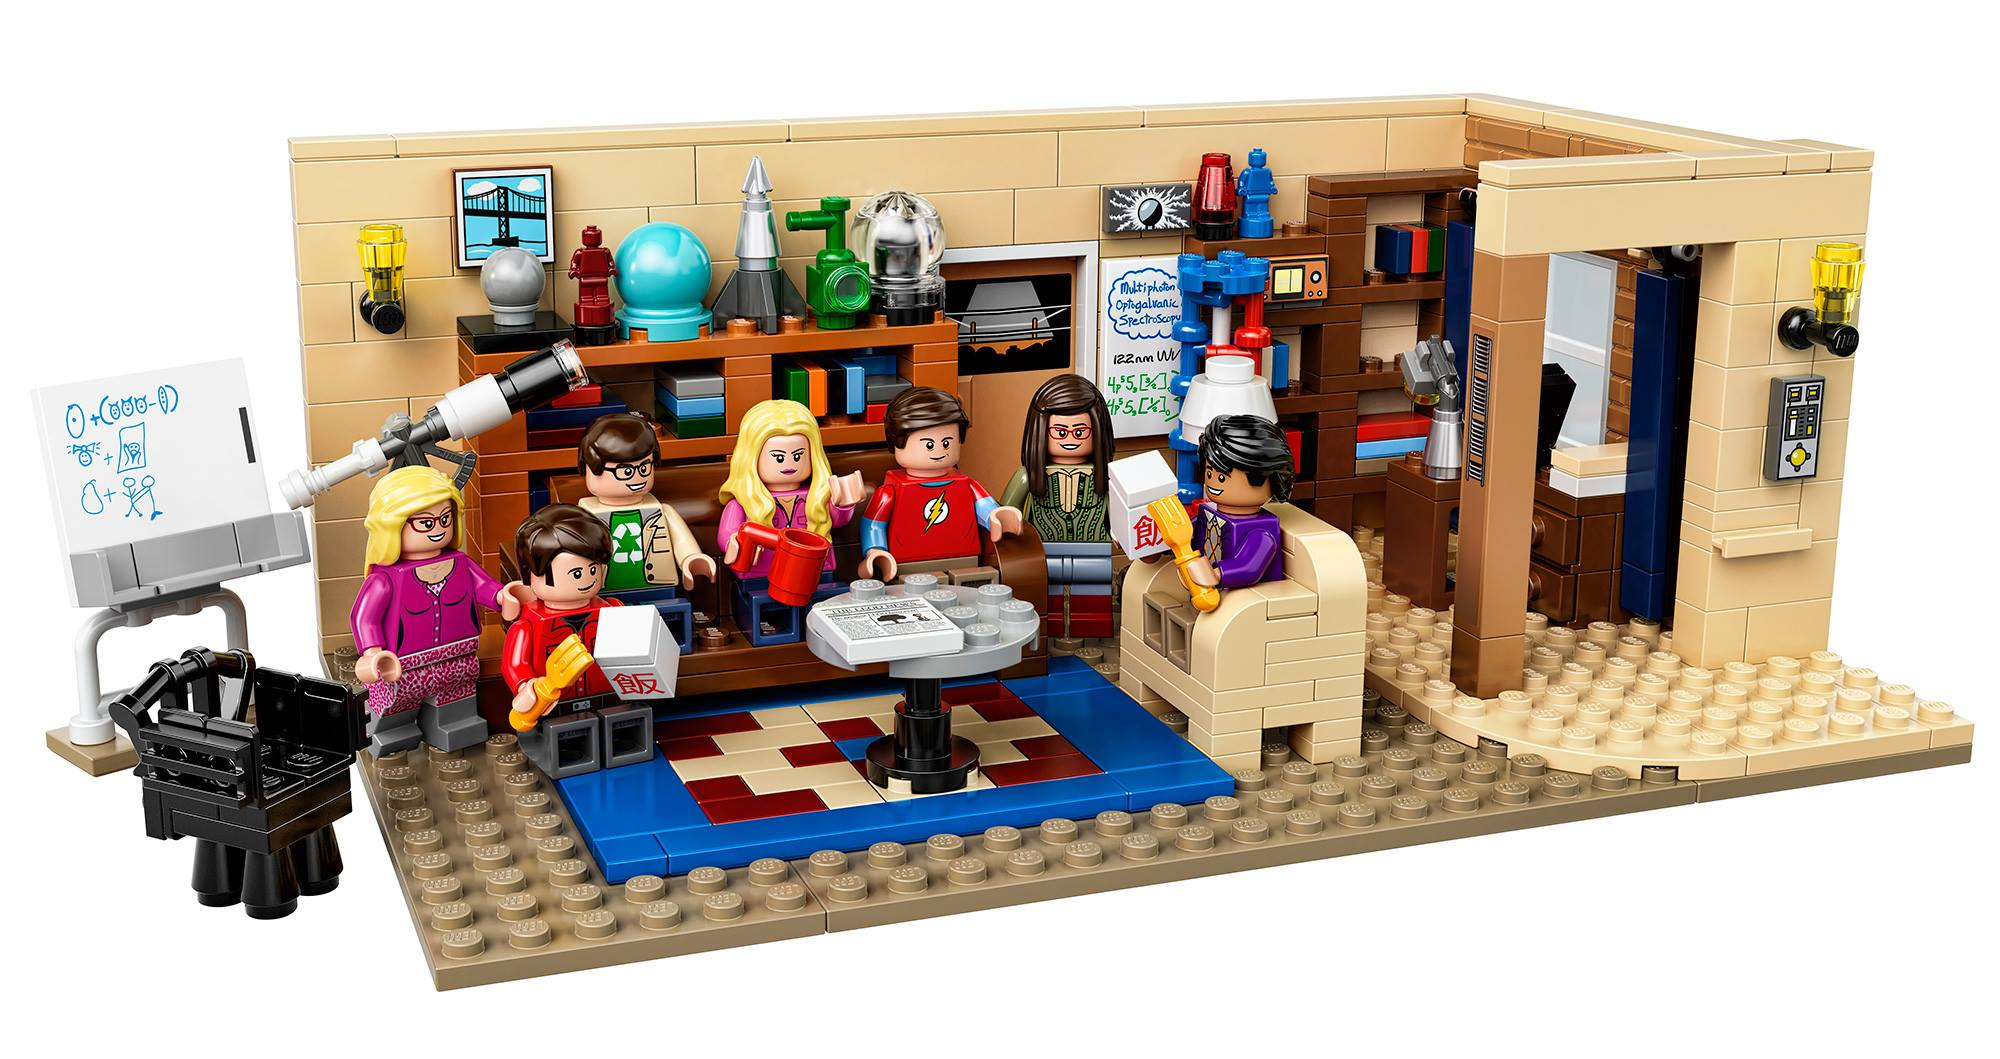 Lego Big Bang Theory Set 21302 Revealed Amp Photos Bricks